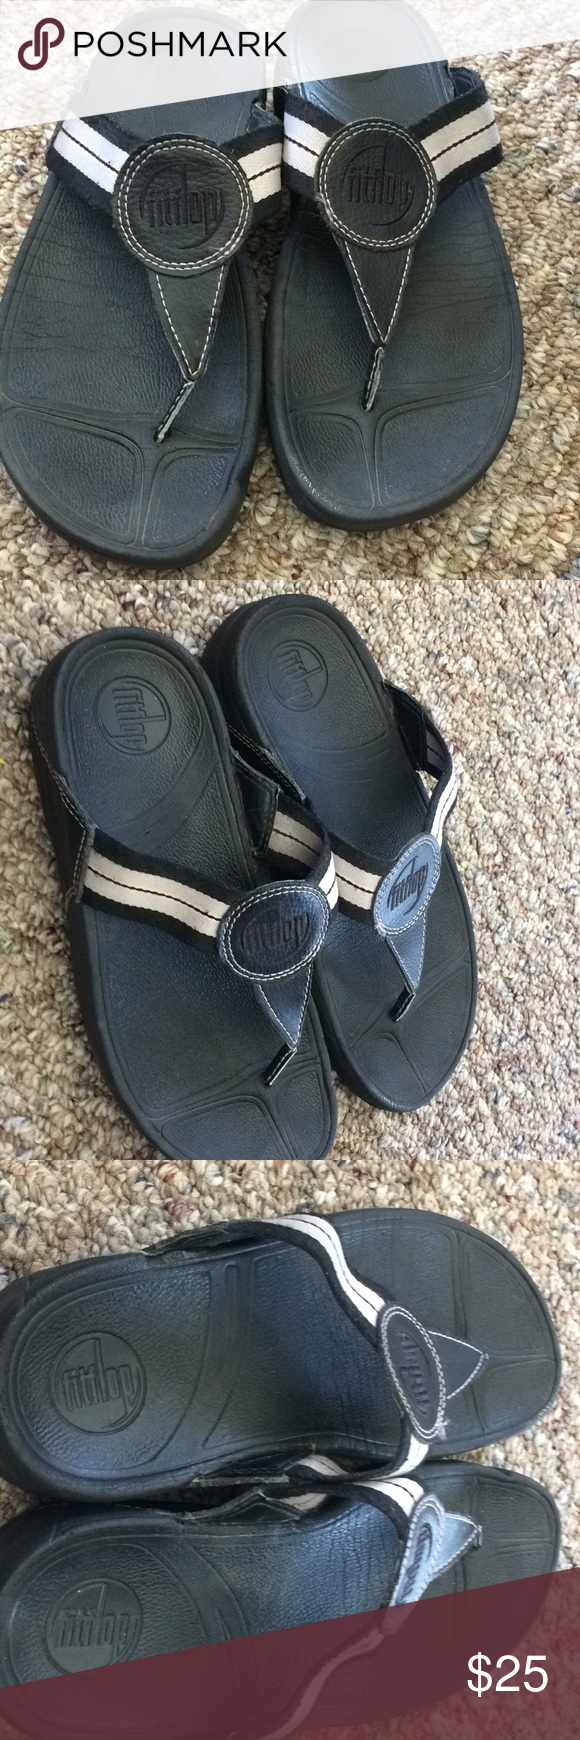 3fb24188f35f87 Fitflop women s flip flops size 7 These are in great condition. Black with  white stripes on the straps with light pink accents. They are size 7.